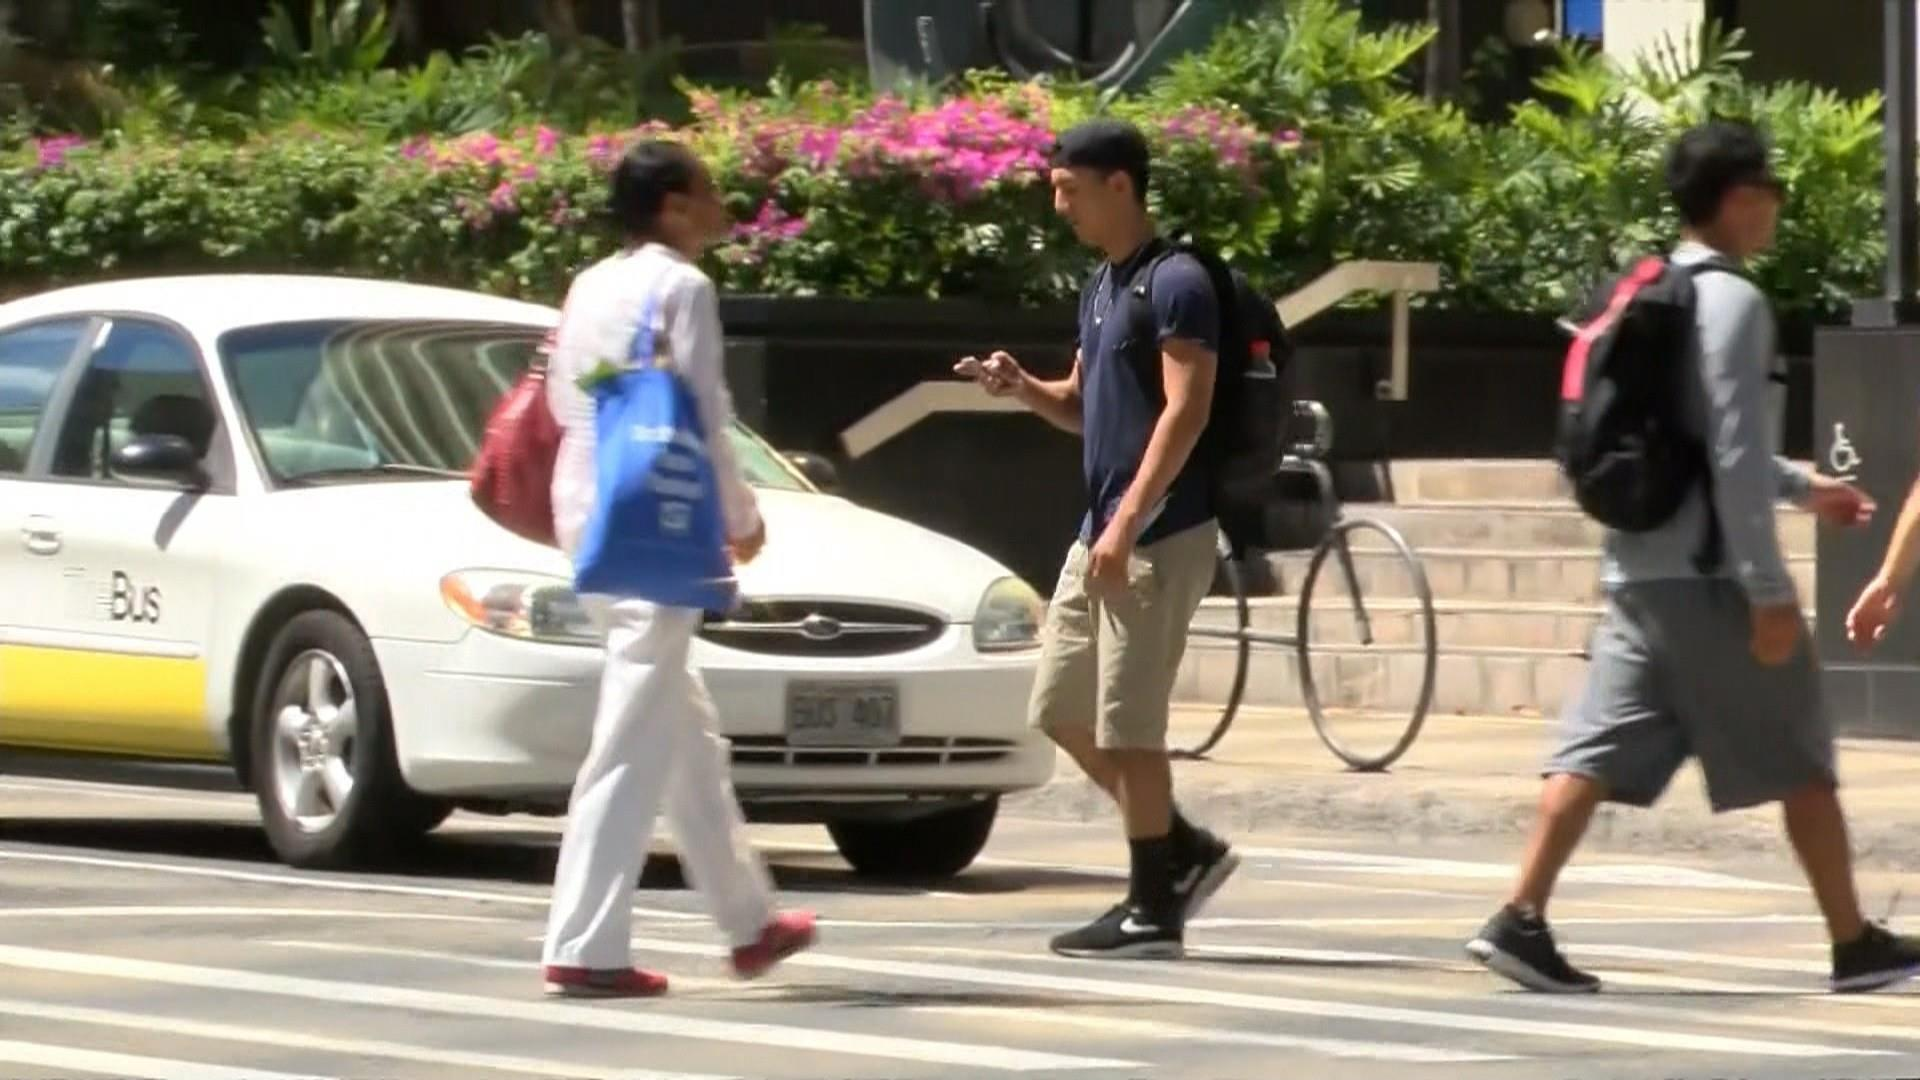 New York might place ban on texting while crossing the street